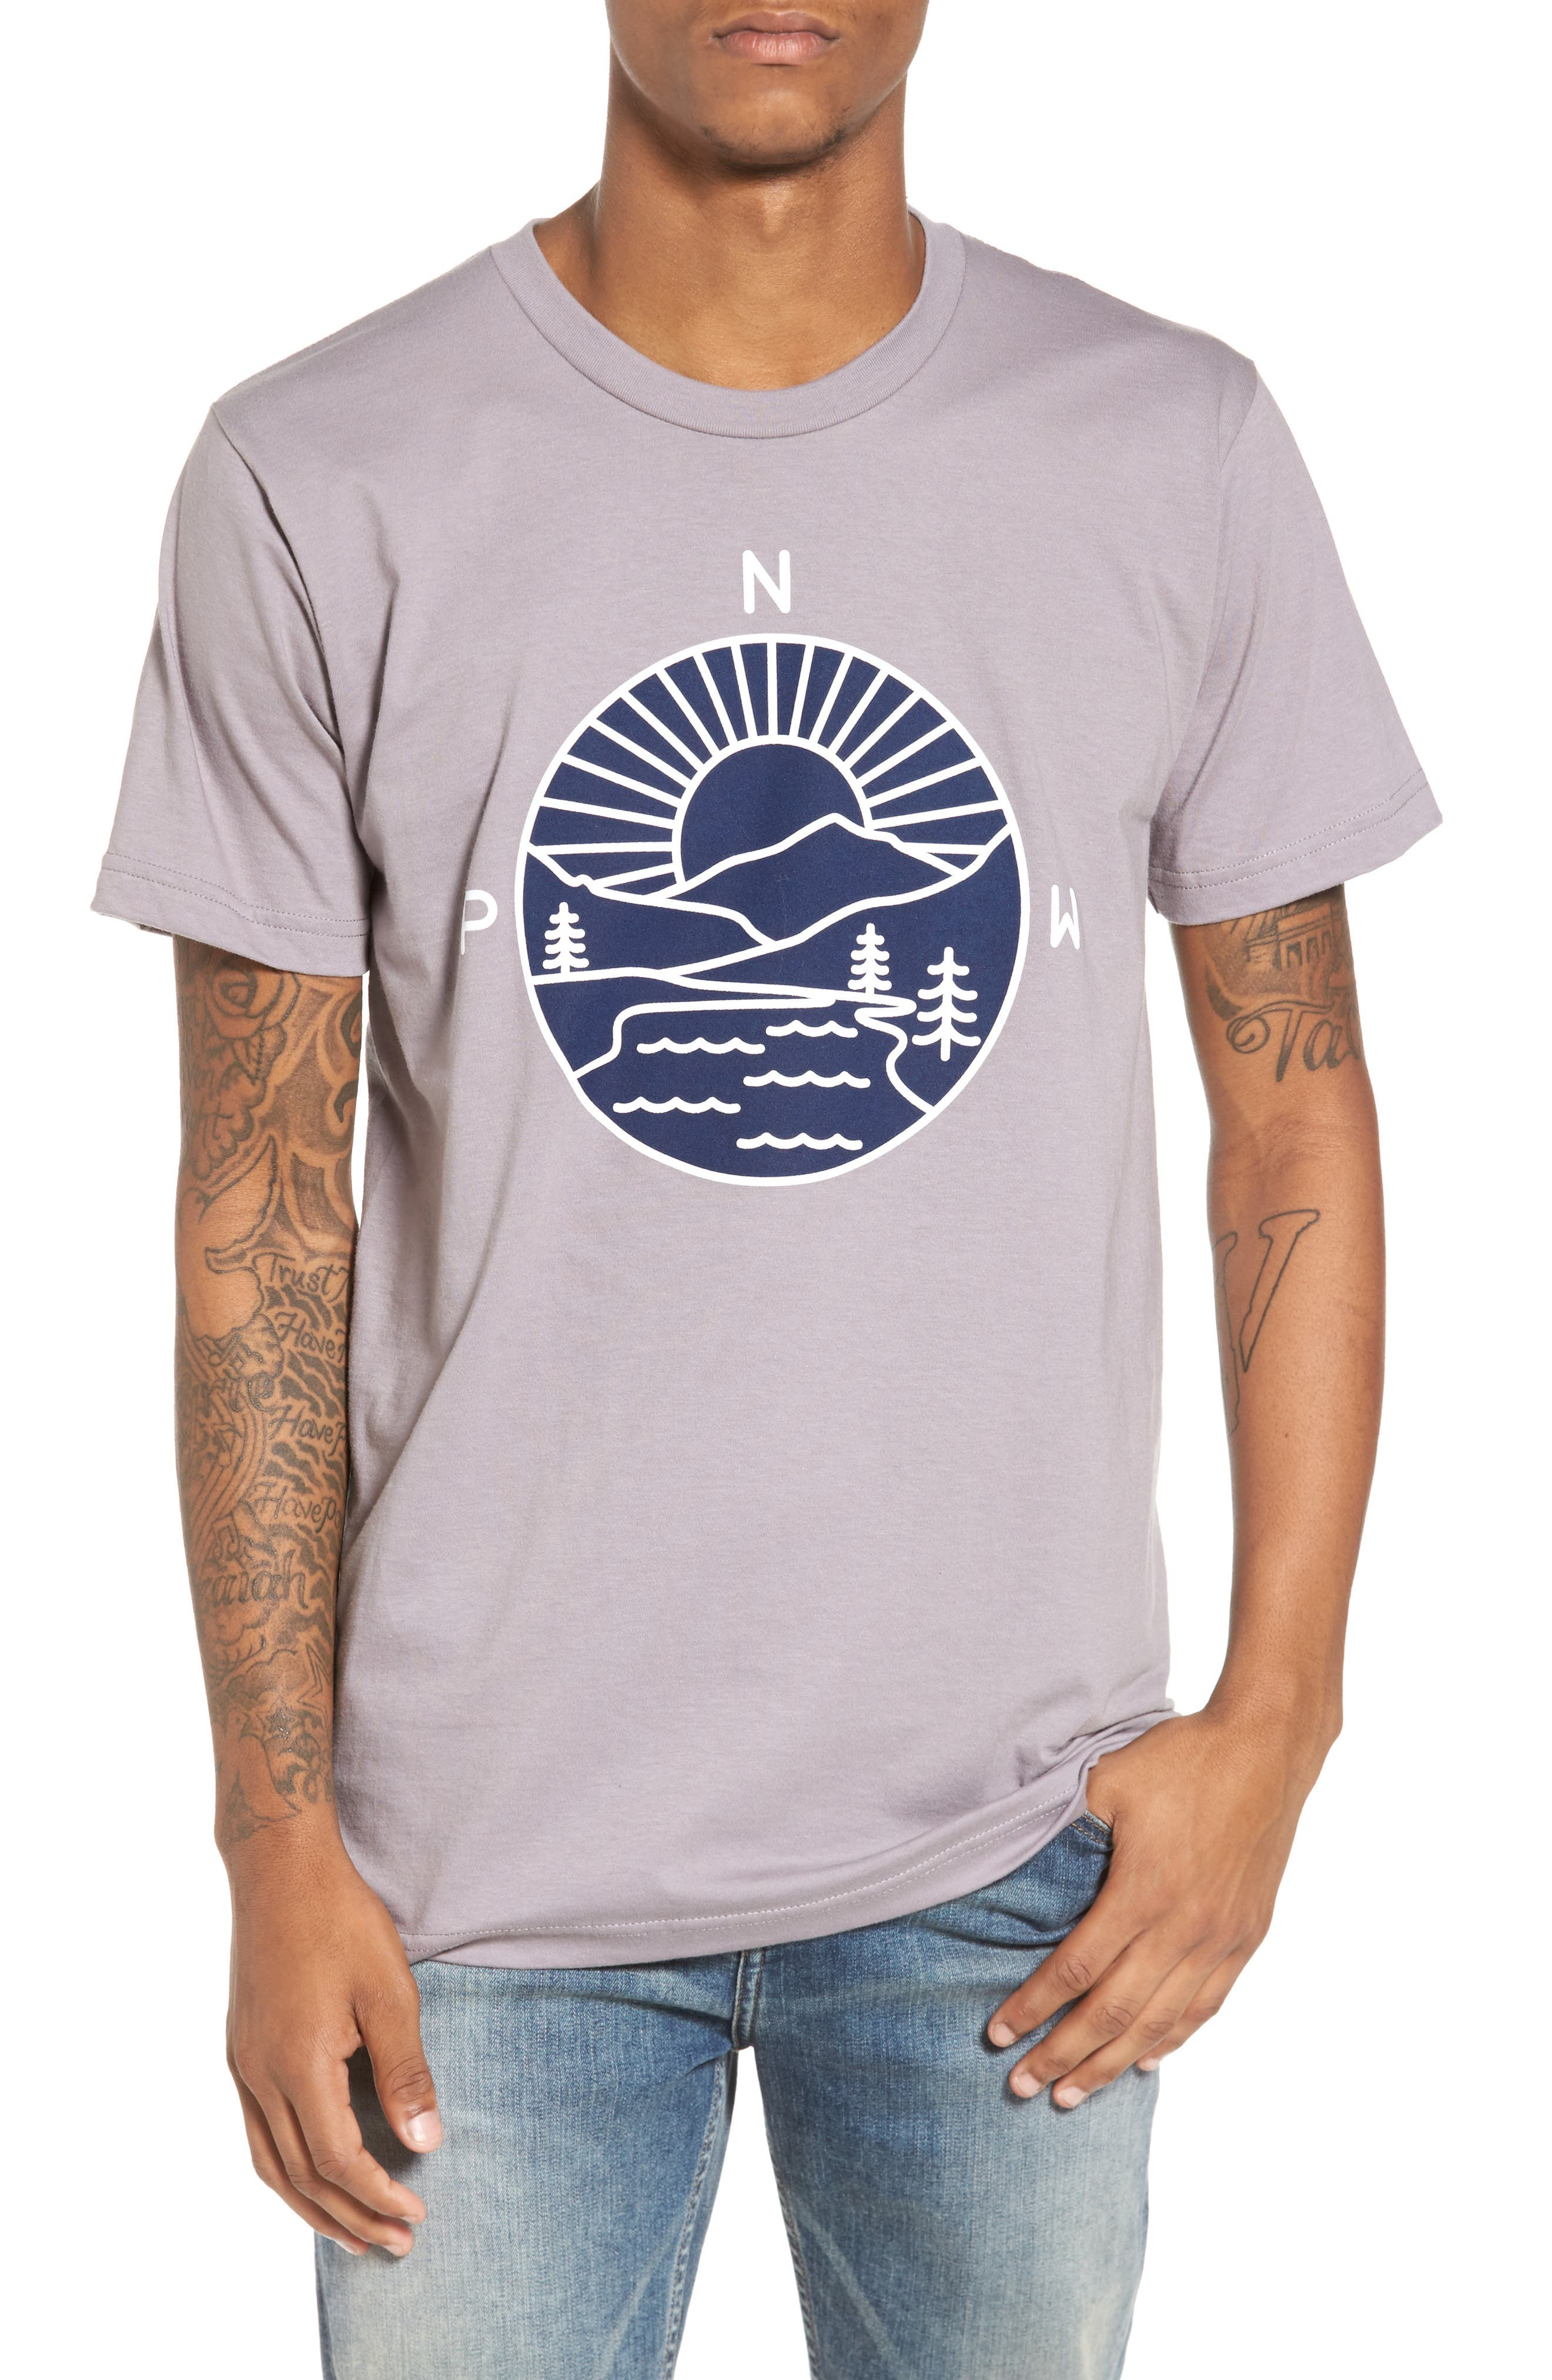 PNW Explorer T-Shirt,                             Main thumbnail 1, color,                             020